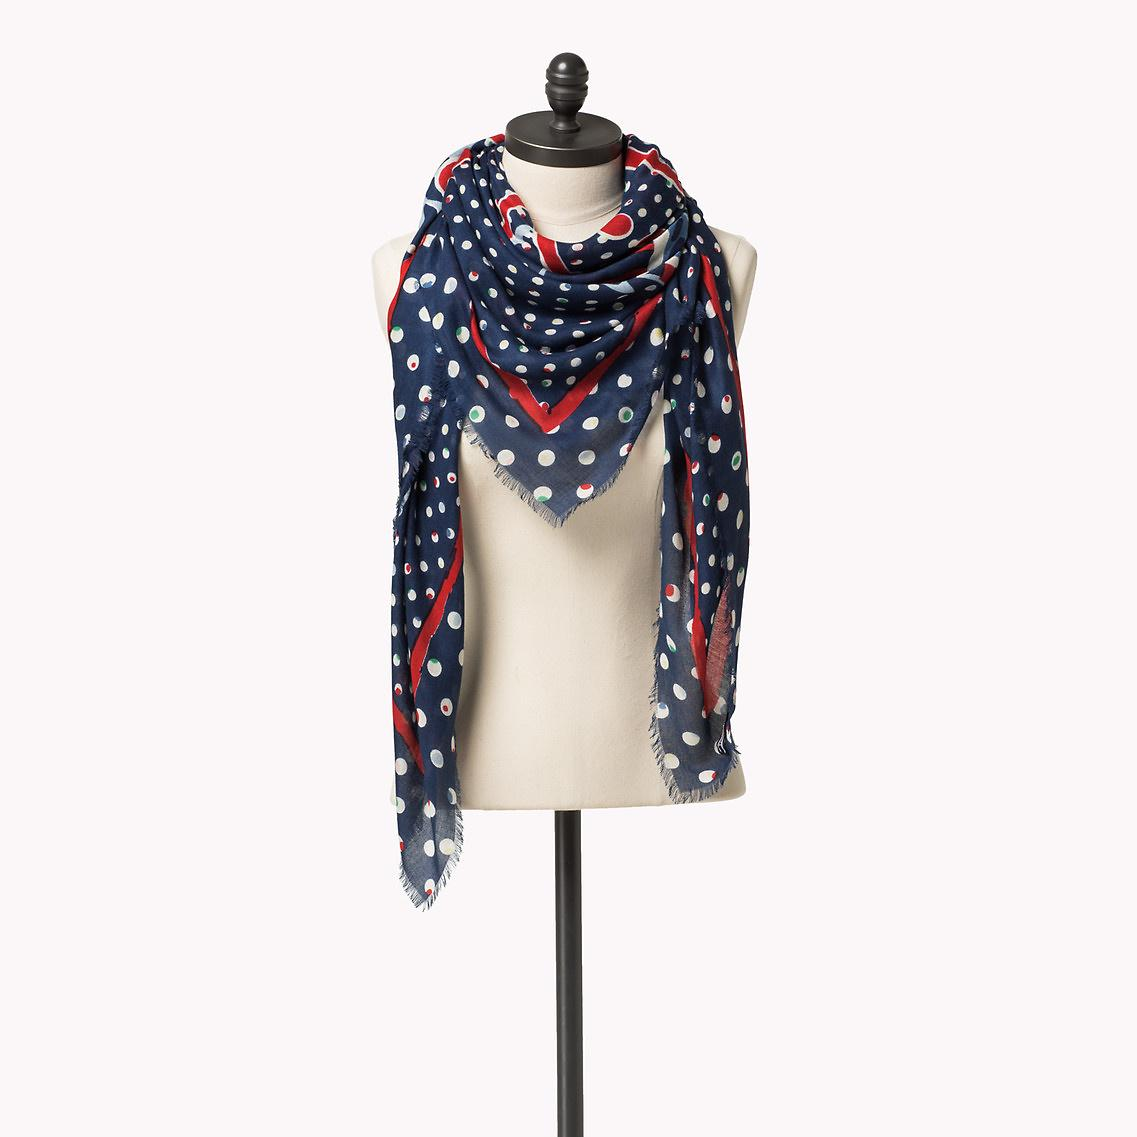 Tommy Hilfiger Viscose Printed Scarf in Blue - Lyst